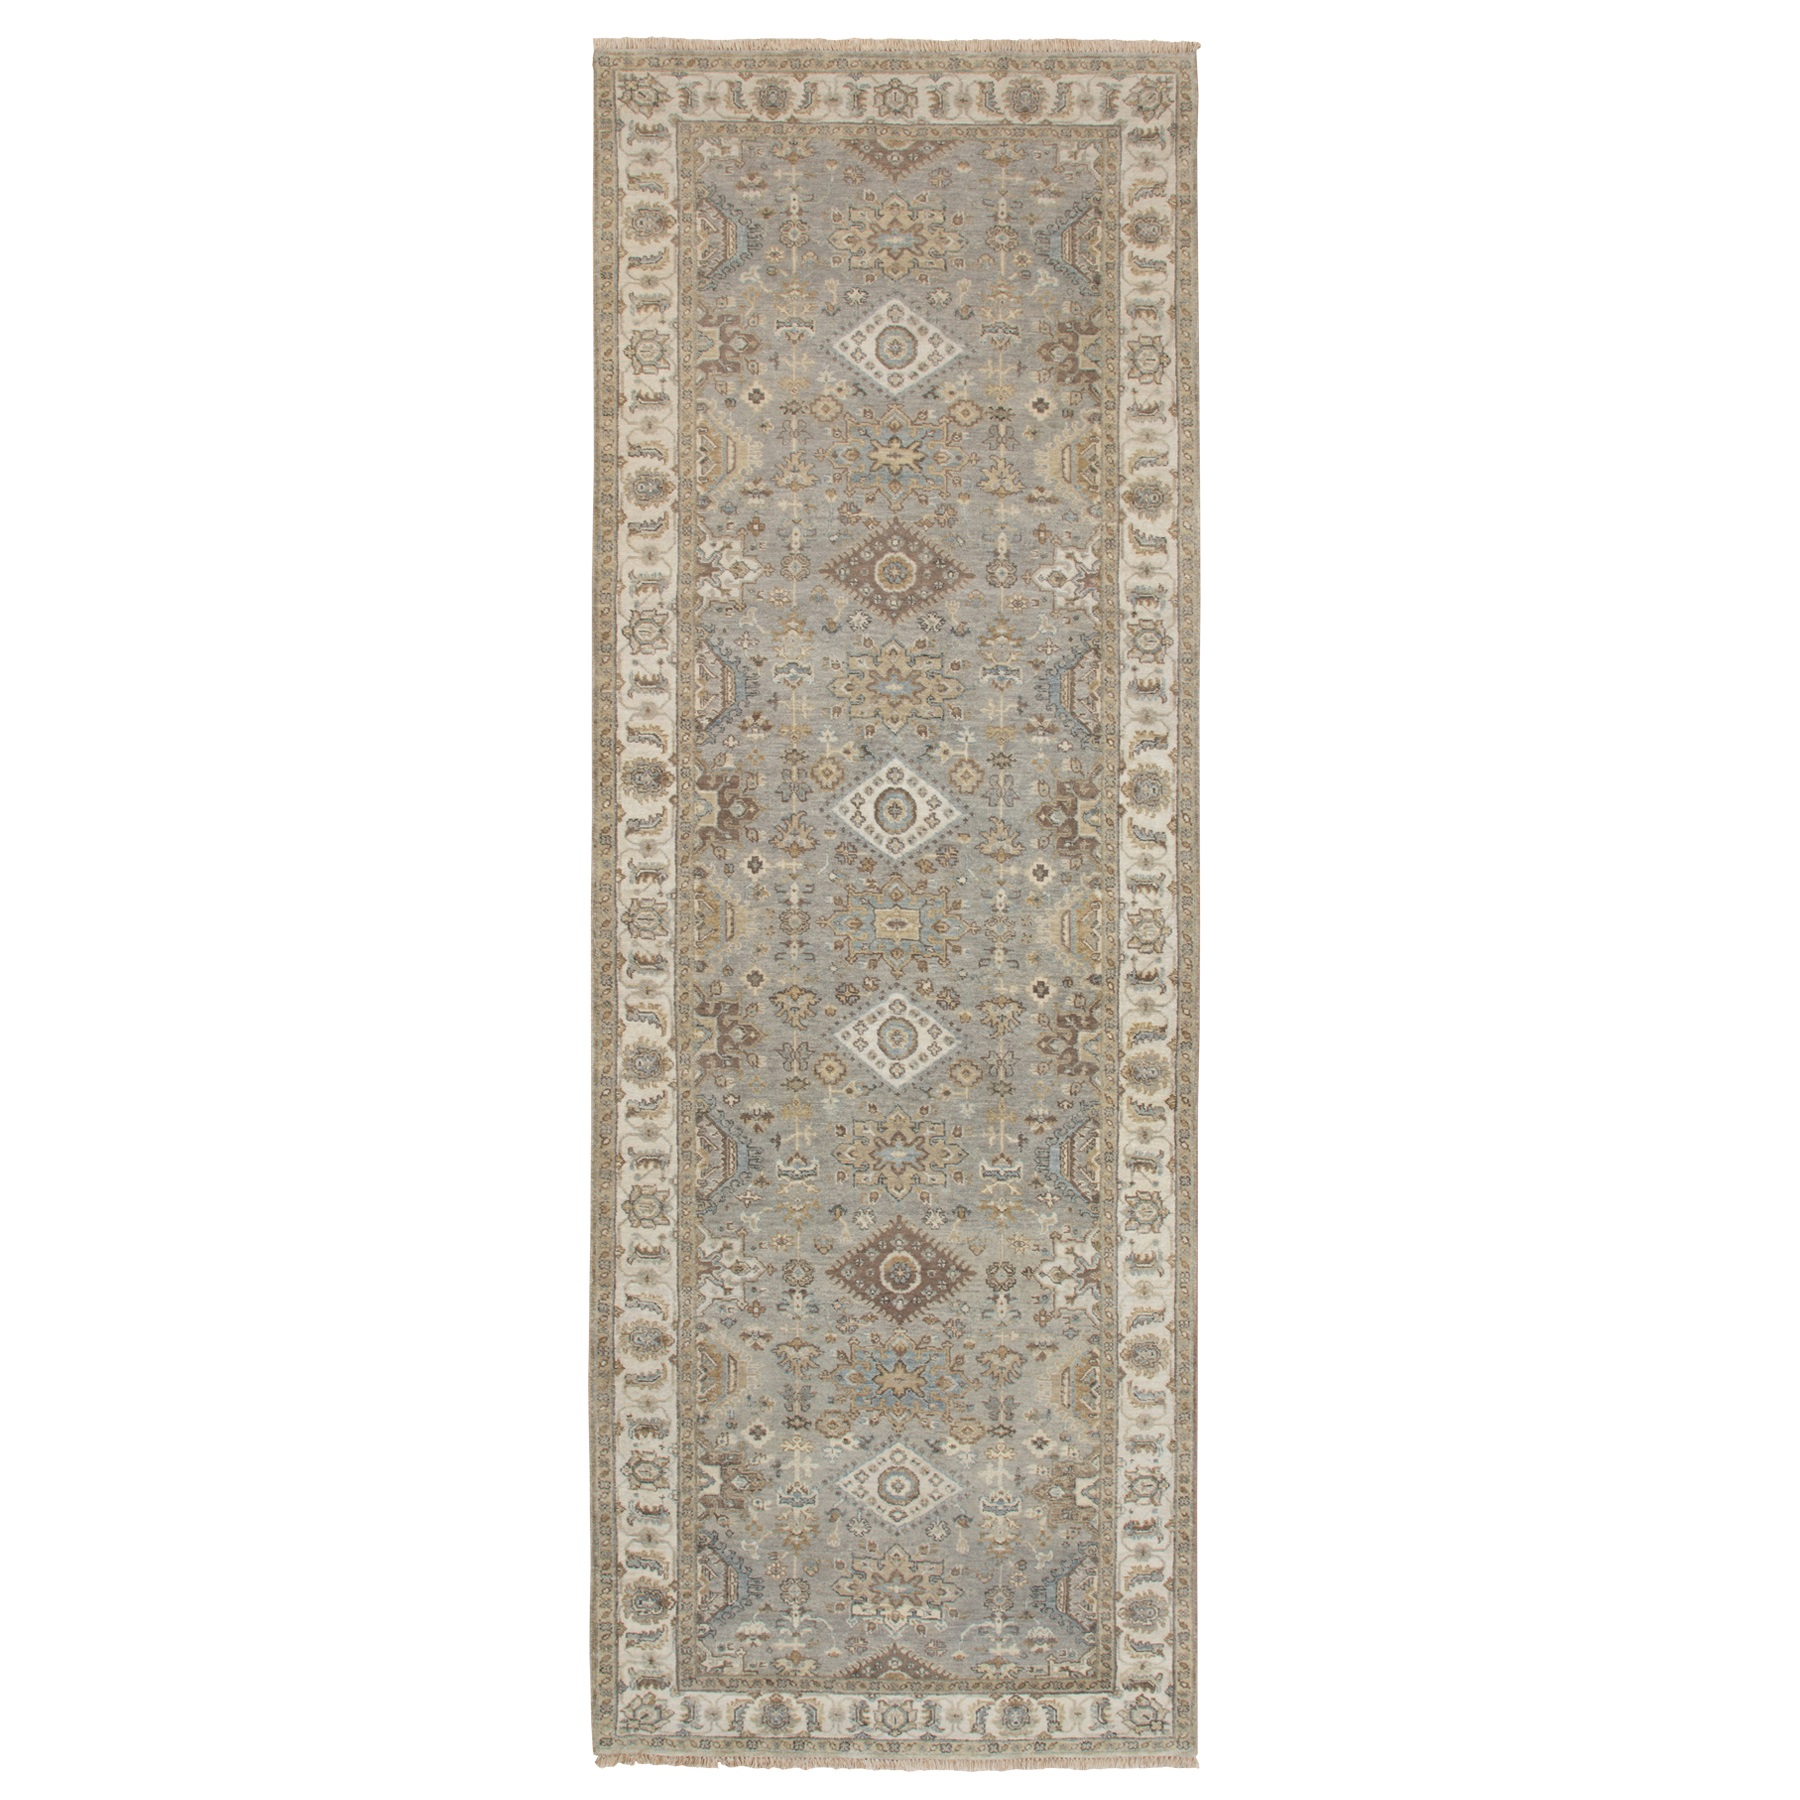 Serapi Heriz and Bakhshayesh Collection Hand Knotted Grey Rug No: 1124210